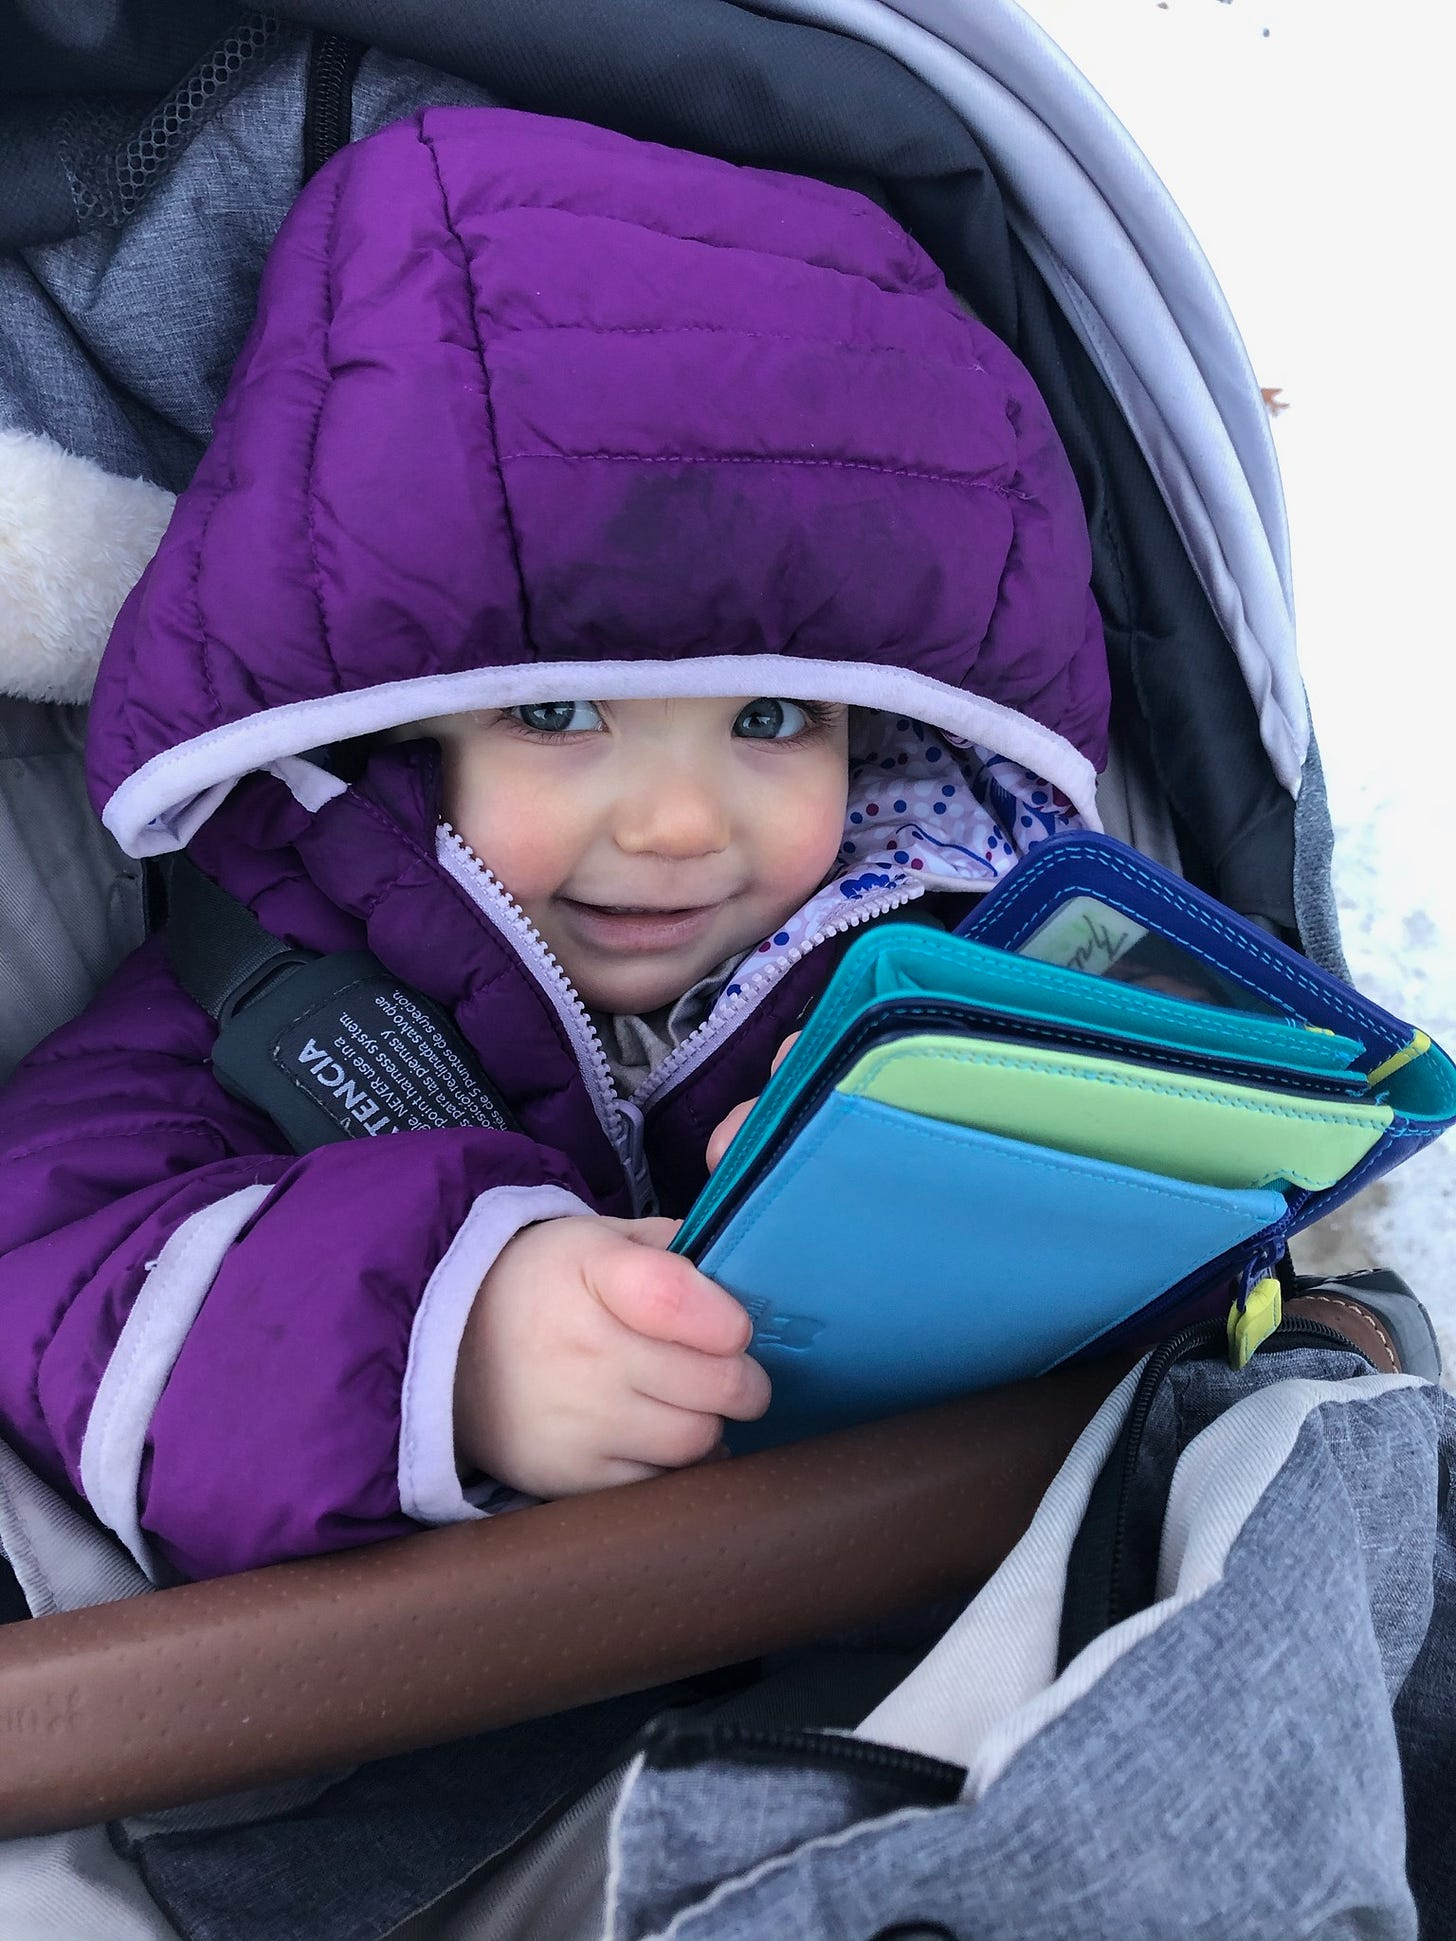 A cute baby in a stroller wearing a snowsuit holding a wallet and smiling